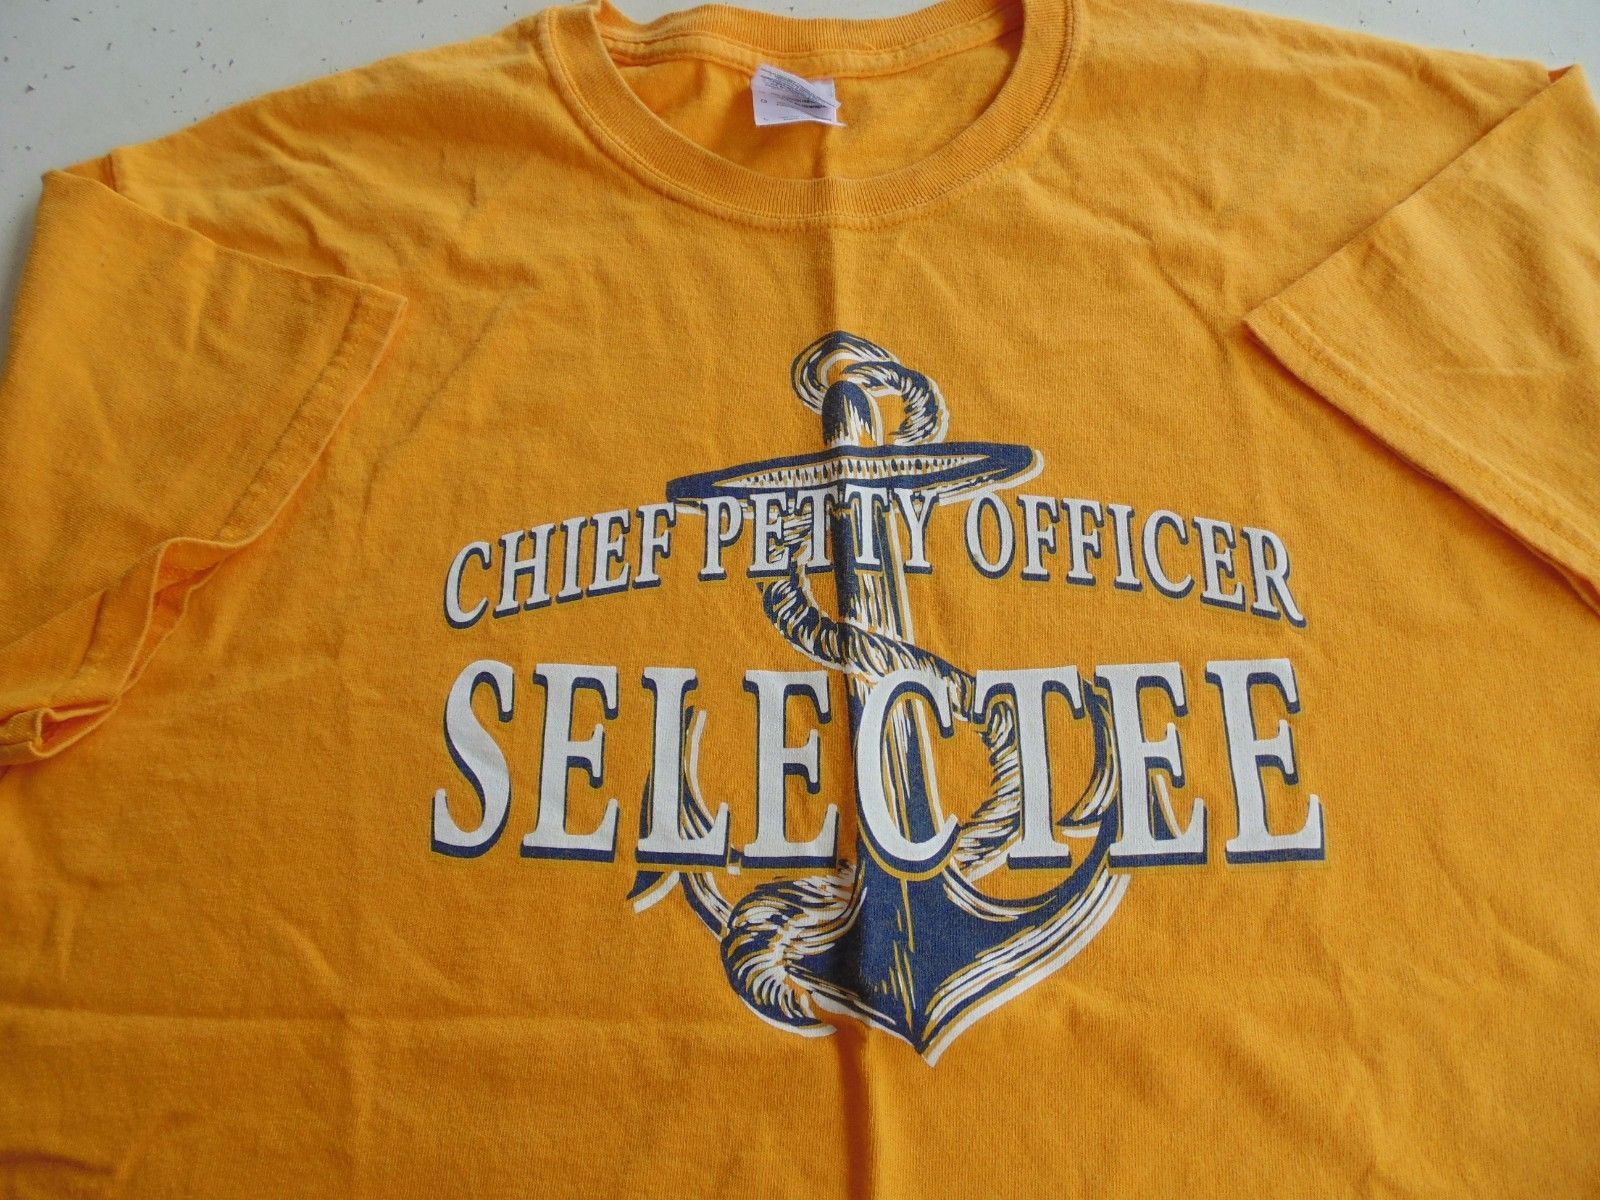 USN US NAVY CPO SELECTEE ACADEMY PEARL HARBOR YELLOW ATHLETIC PT S/S T-SHIRT LG - $14.84